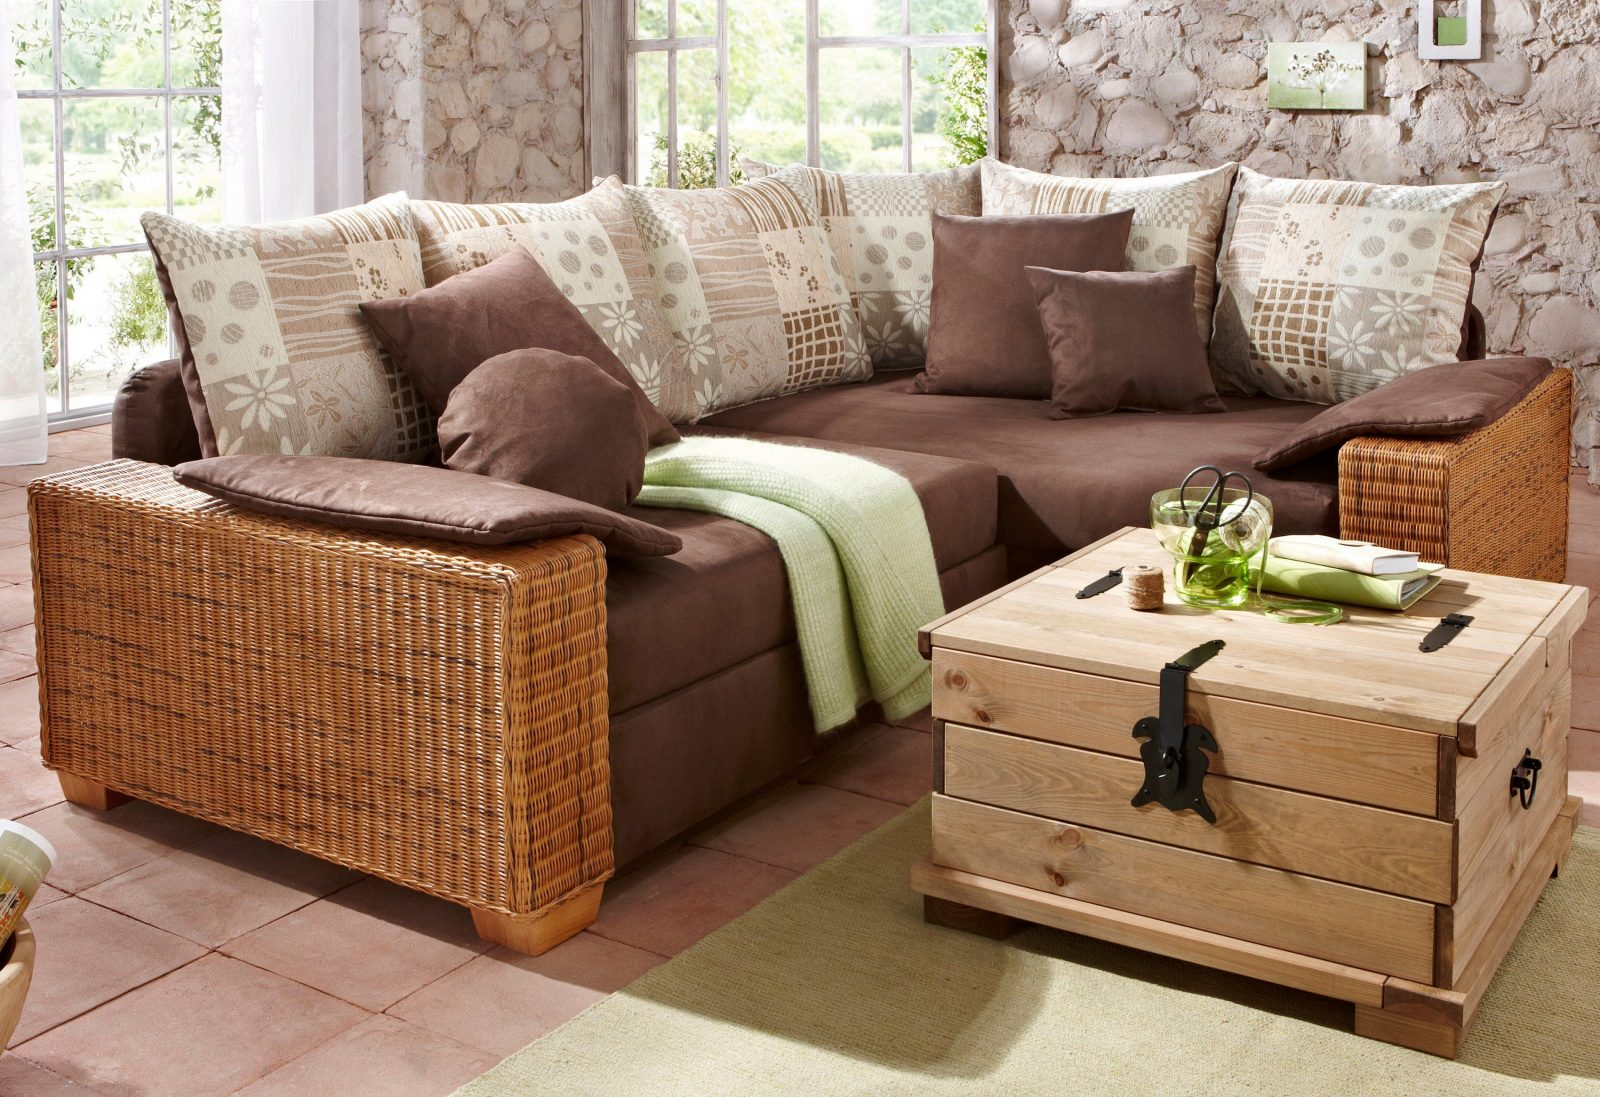 rattansofamitbettfunktion53withrattansofamitbettfunktion von rattan sofa mit schlaffunktion bild. Black Bedroom Furniture Sets. Home Design Ideas